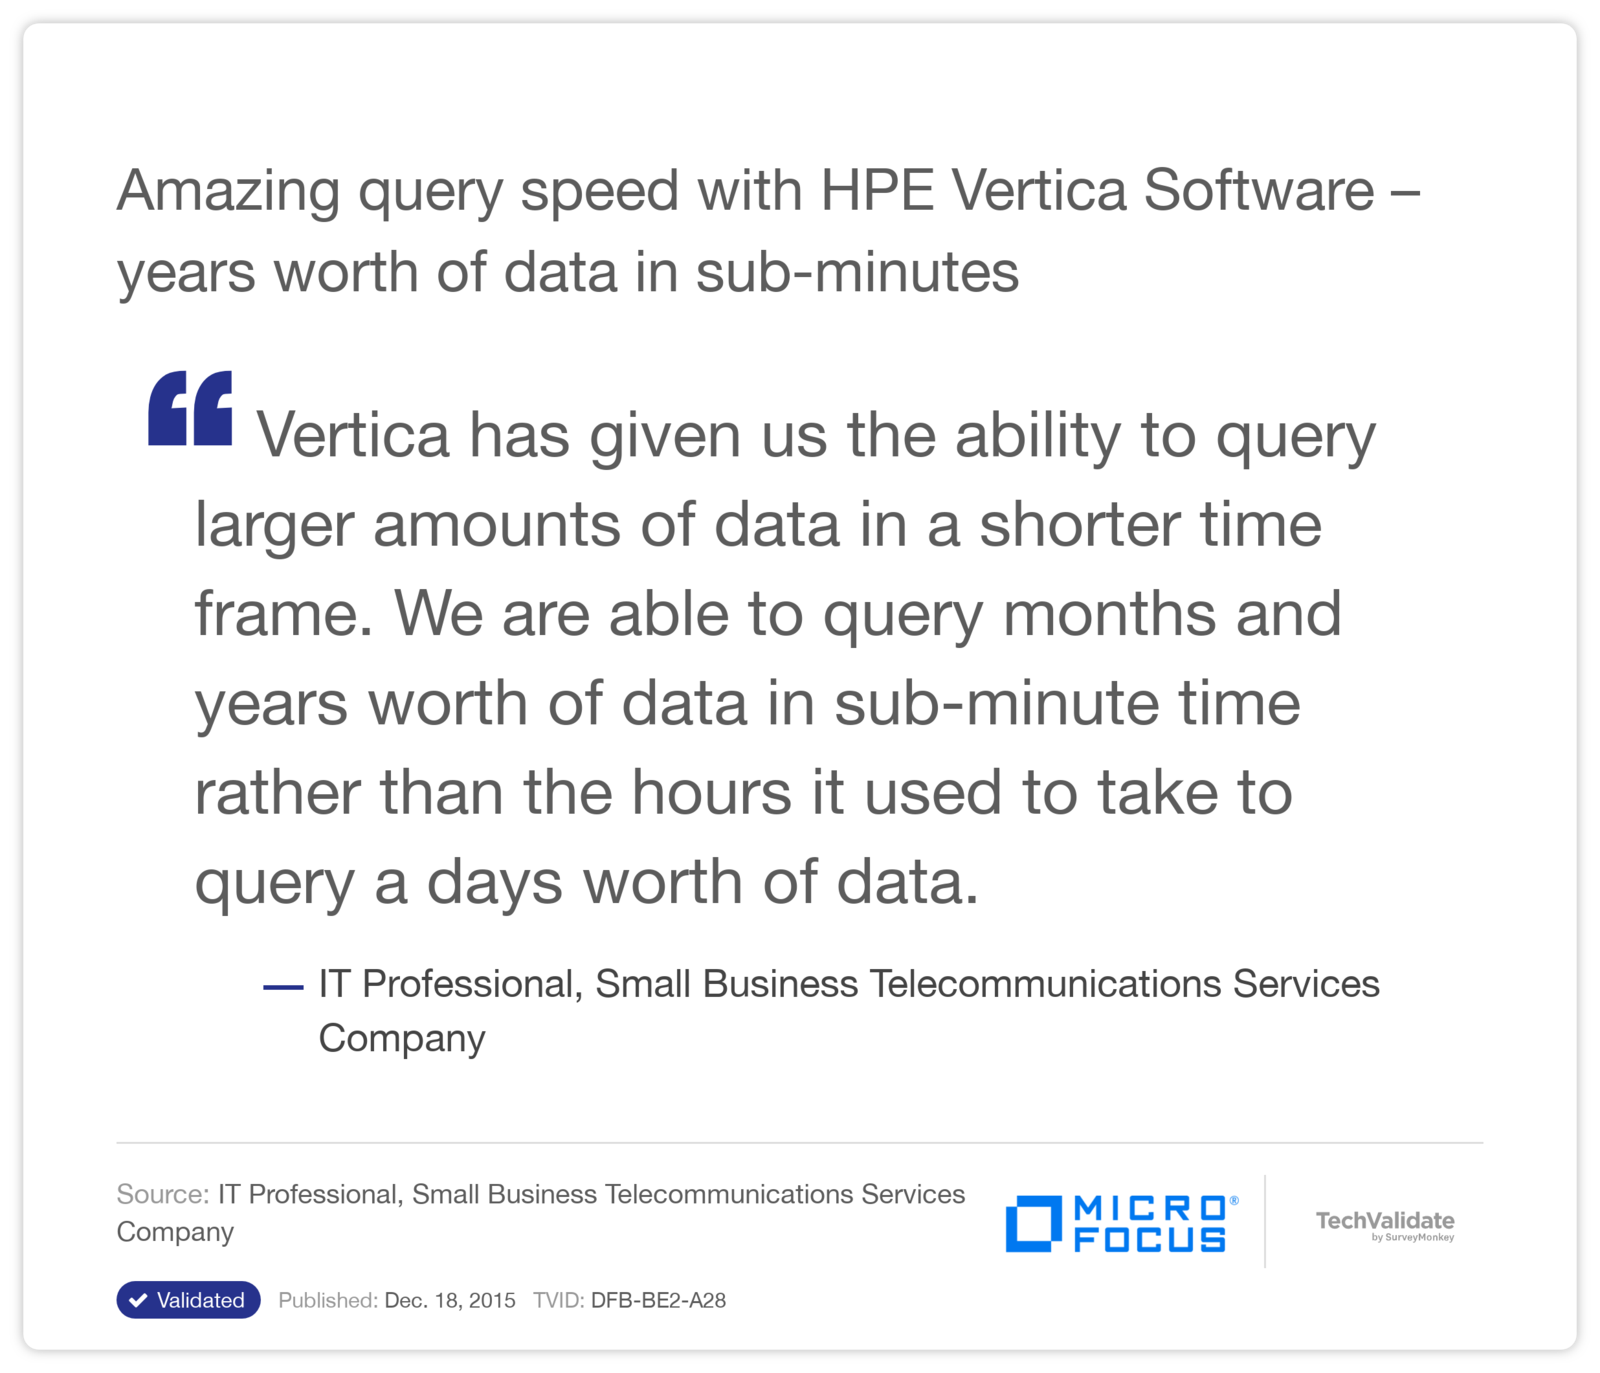 Amazing query speed with HPE Vertica Software-years worth of data in sub-minutes